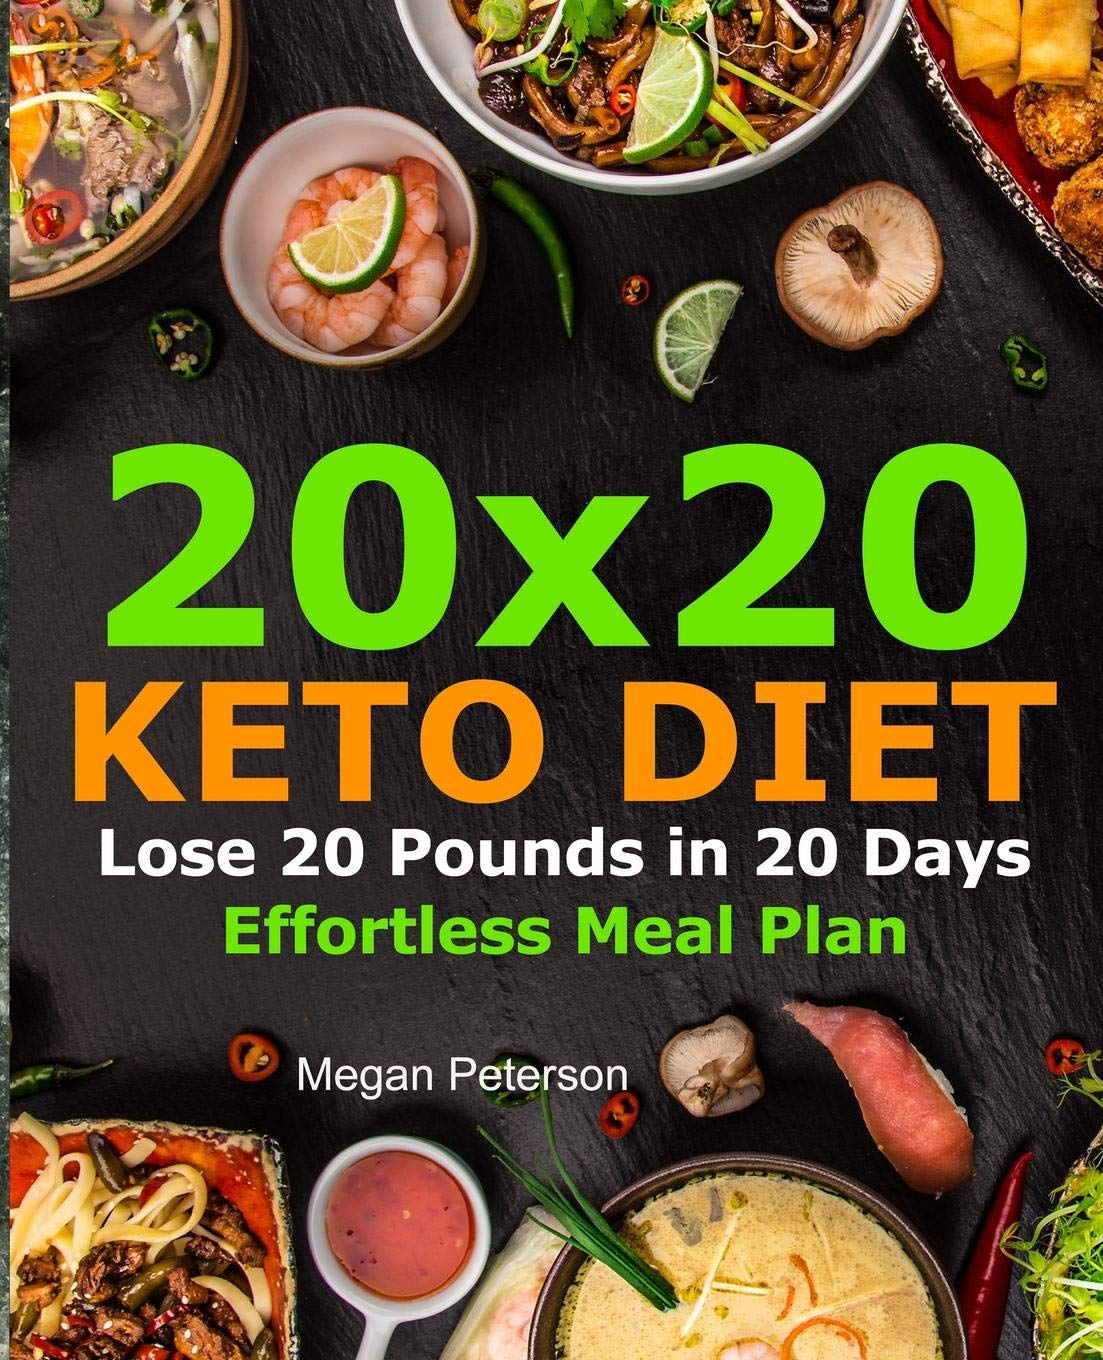 20X20 KETO DIET LOSE 20 POUNDS IN 20 DAYS EFFORTLESS MEAL PLAN